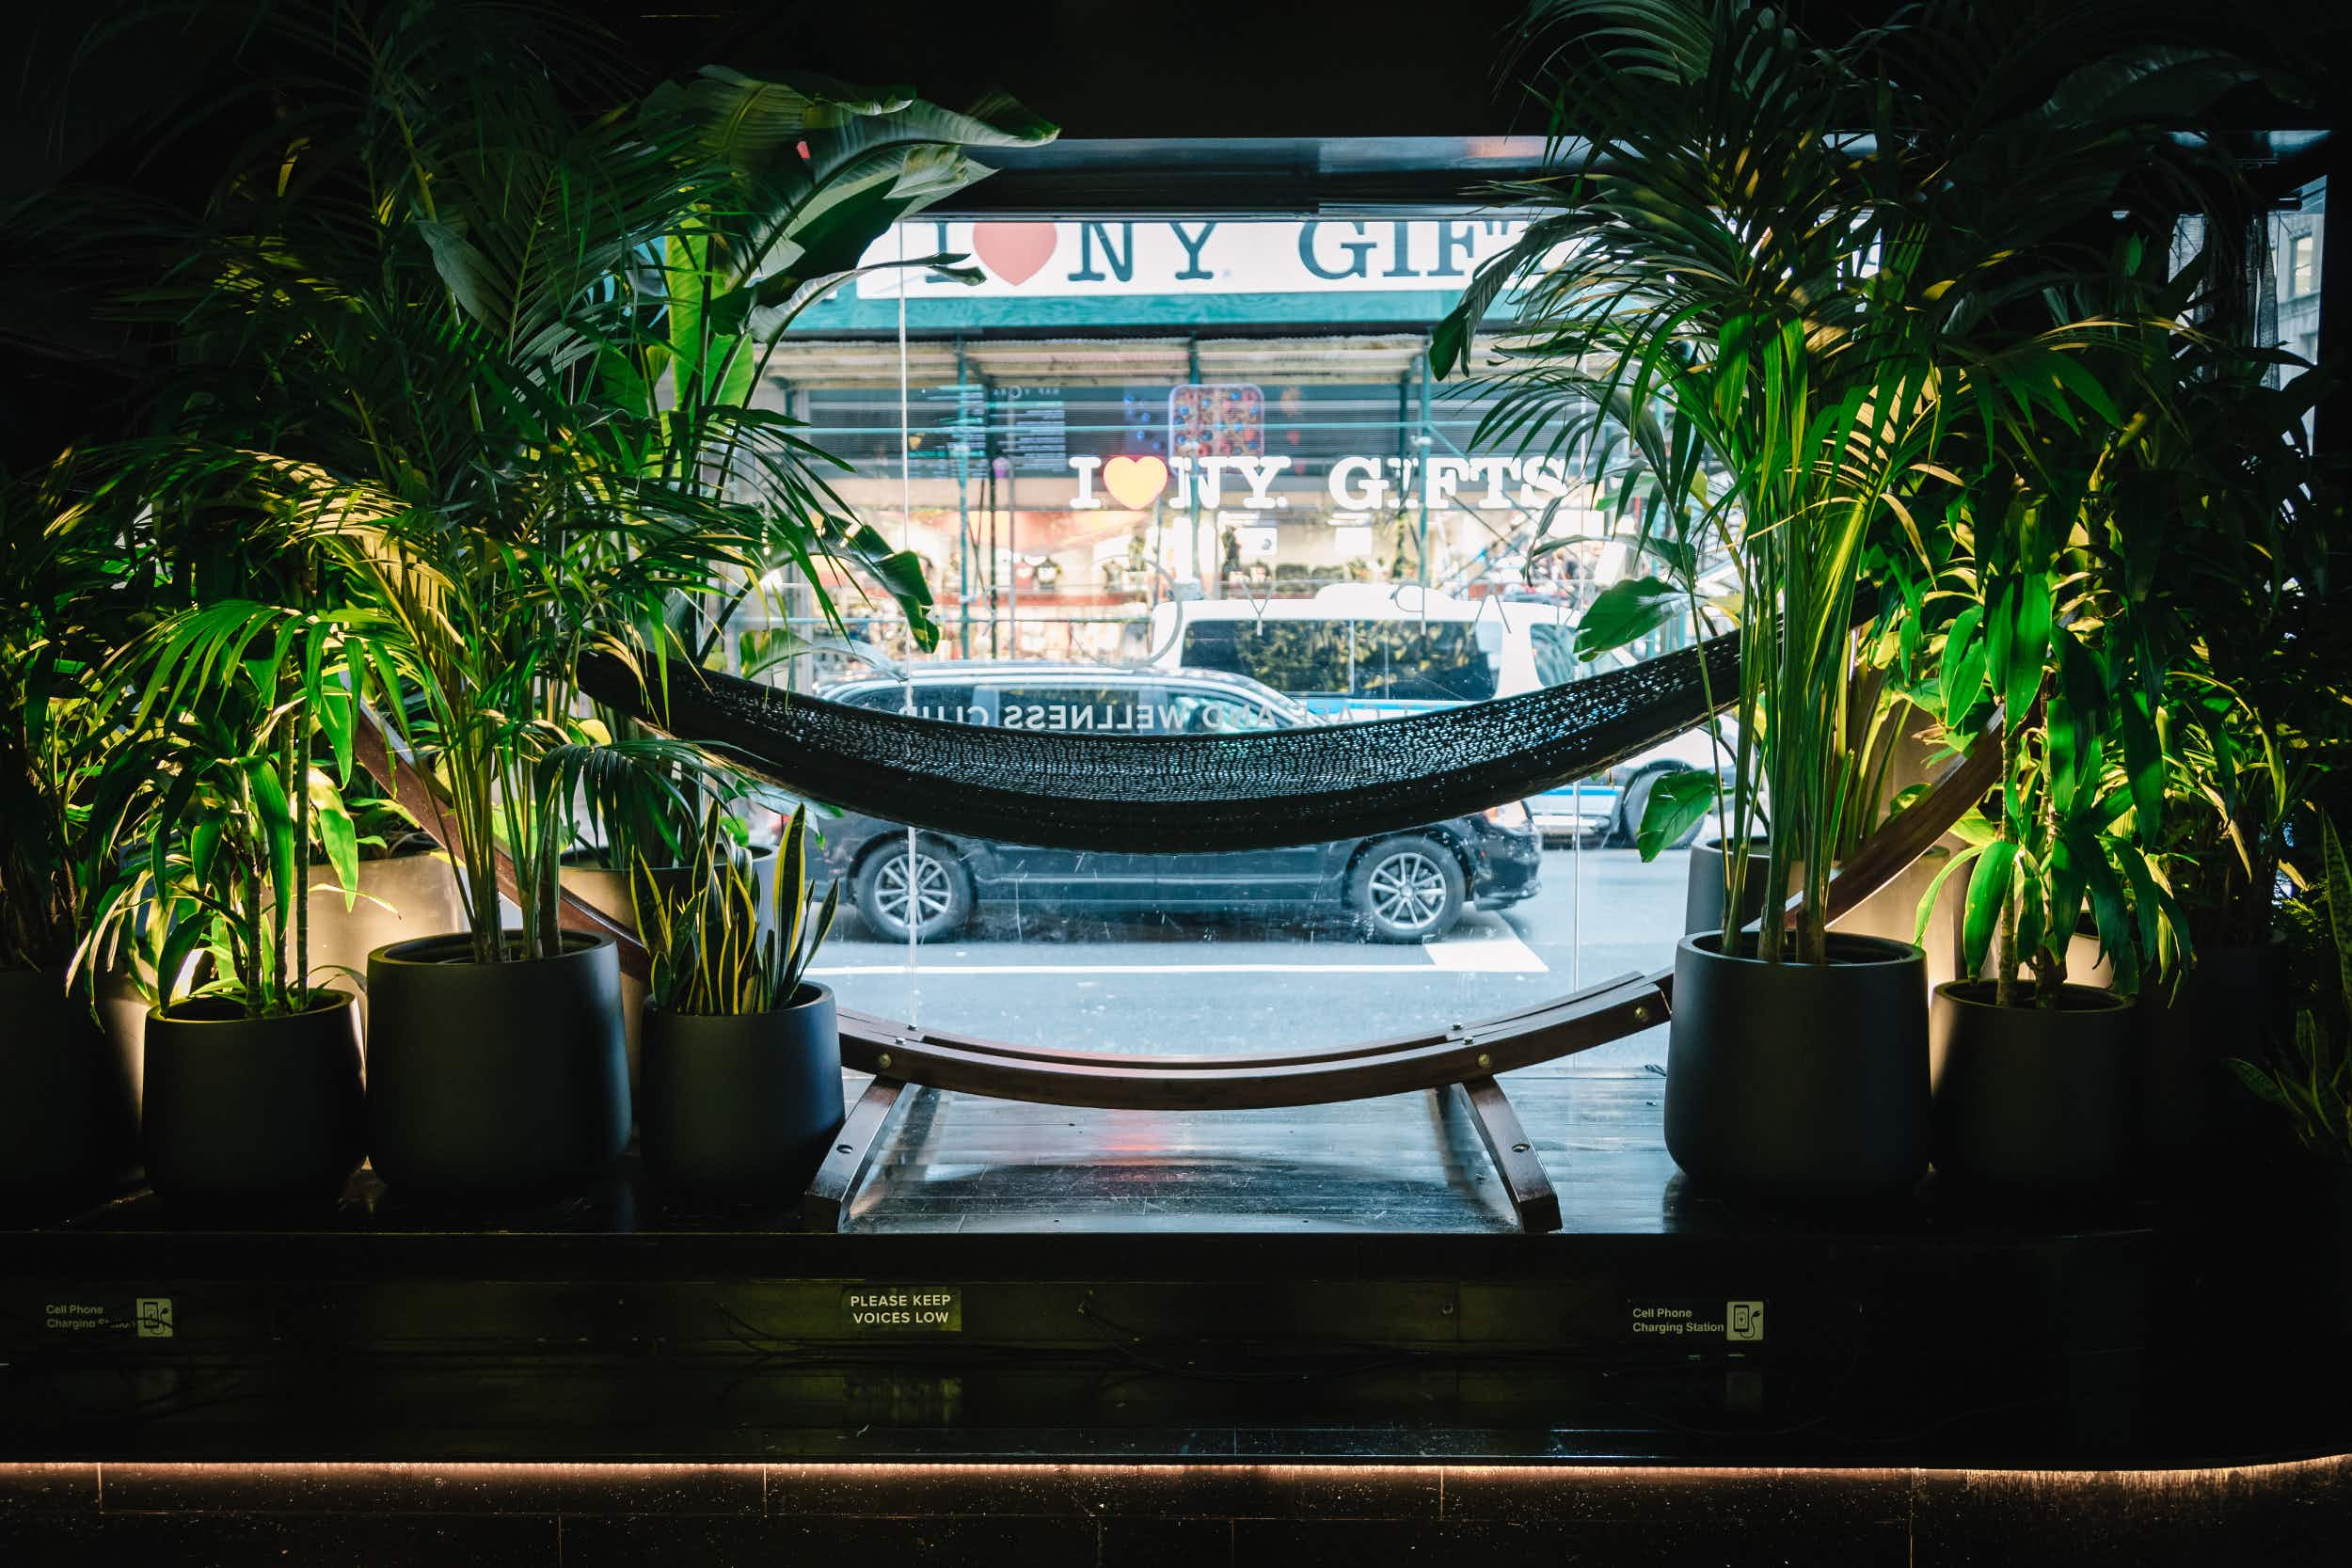 Have a rejuvenating snooze in the city that never sleeps at Nap York